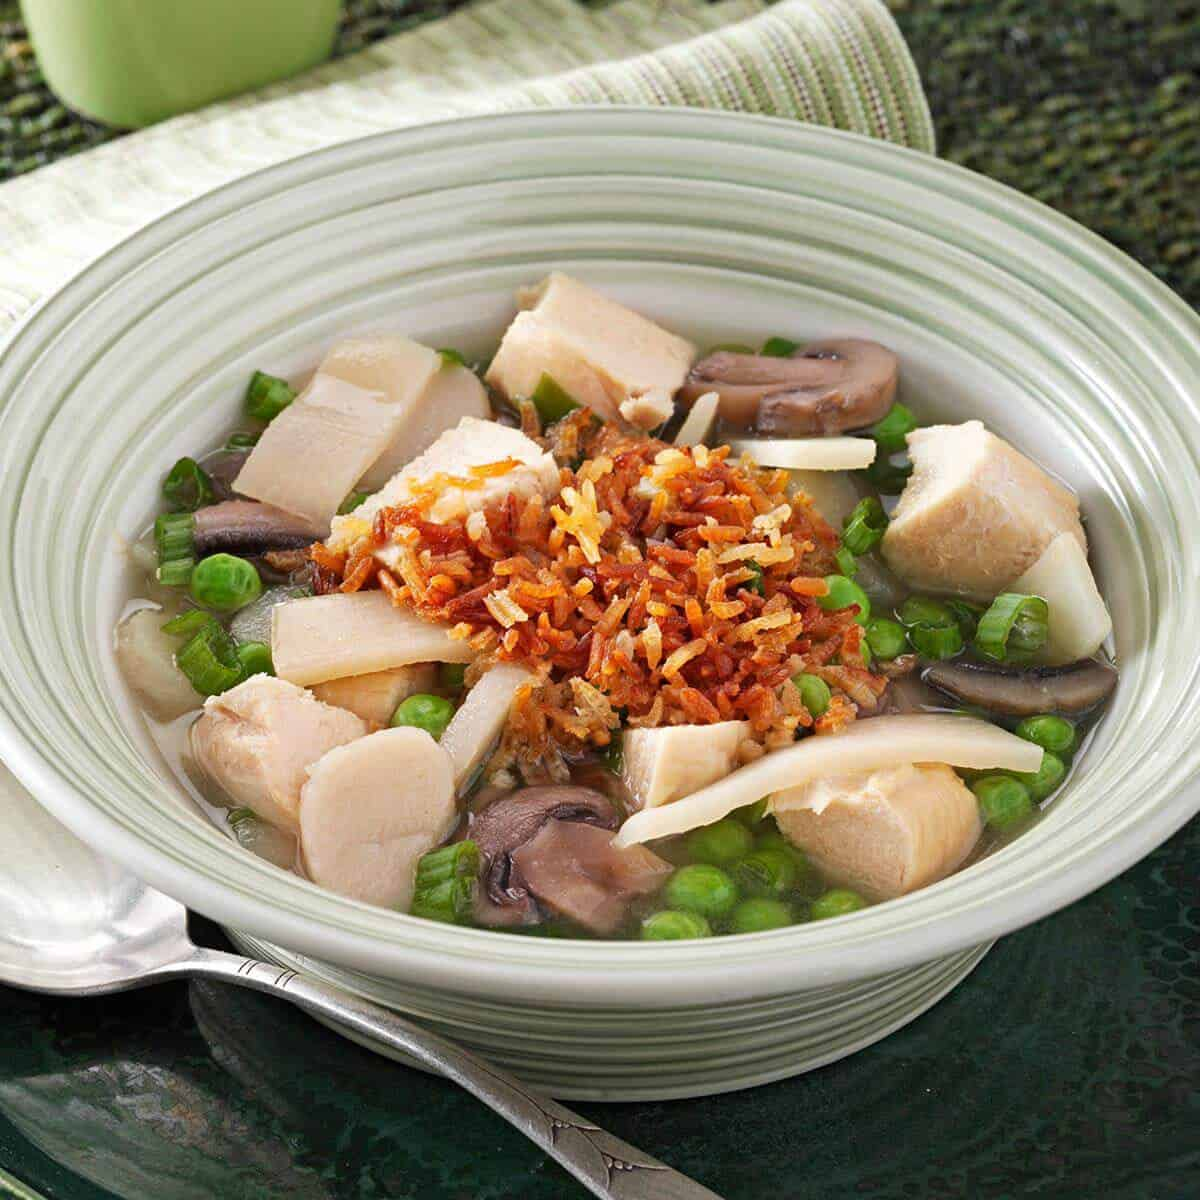 Sizzling rice soup with chicken, mushrooms, bamboo shoots, water chestnuts and peas